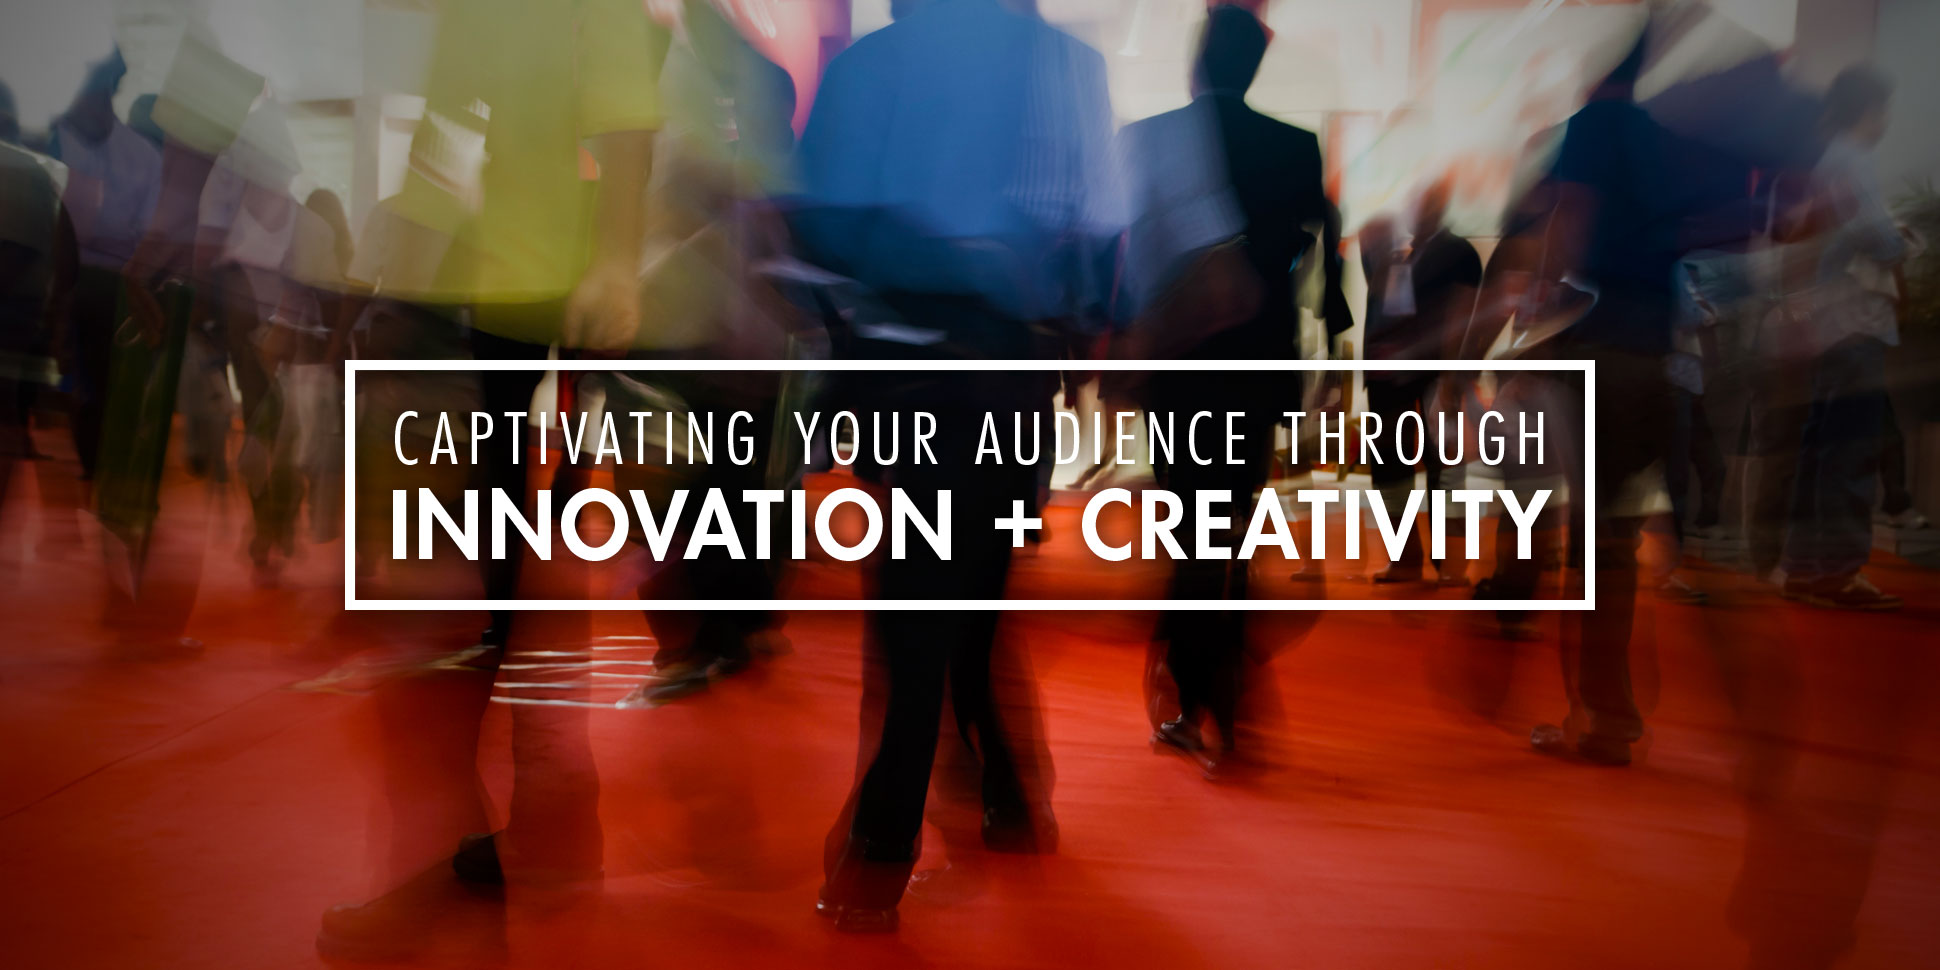 Captivating Your Audience Through Innovation + Creativity